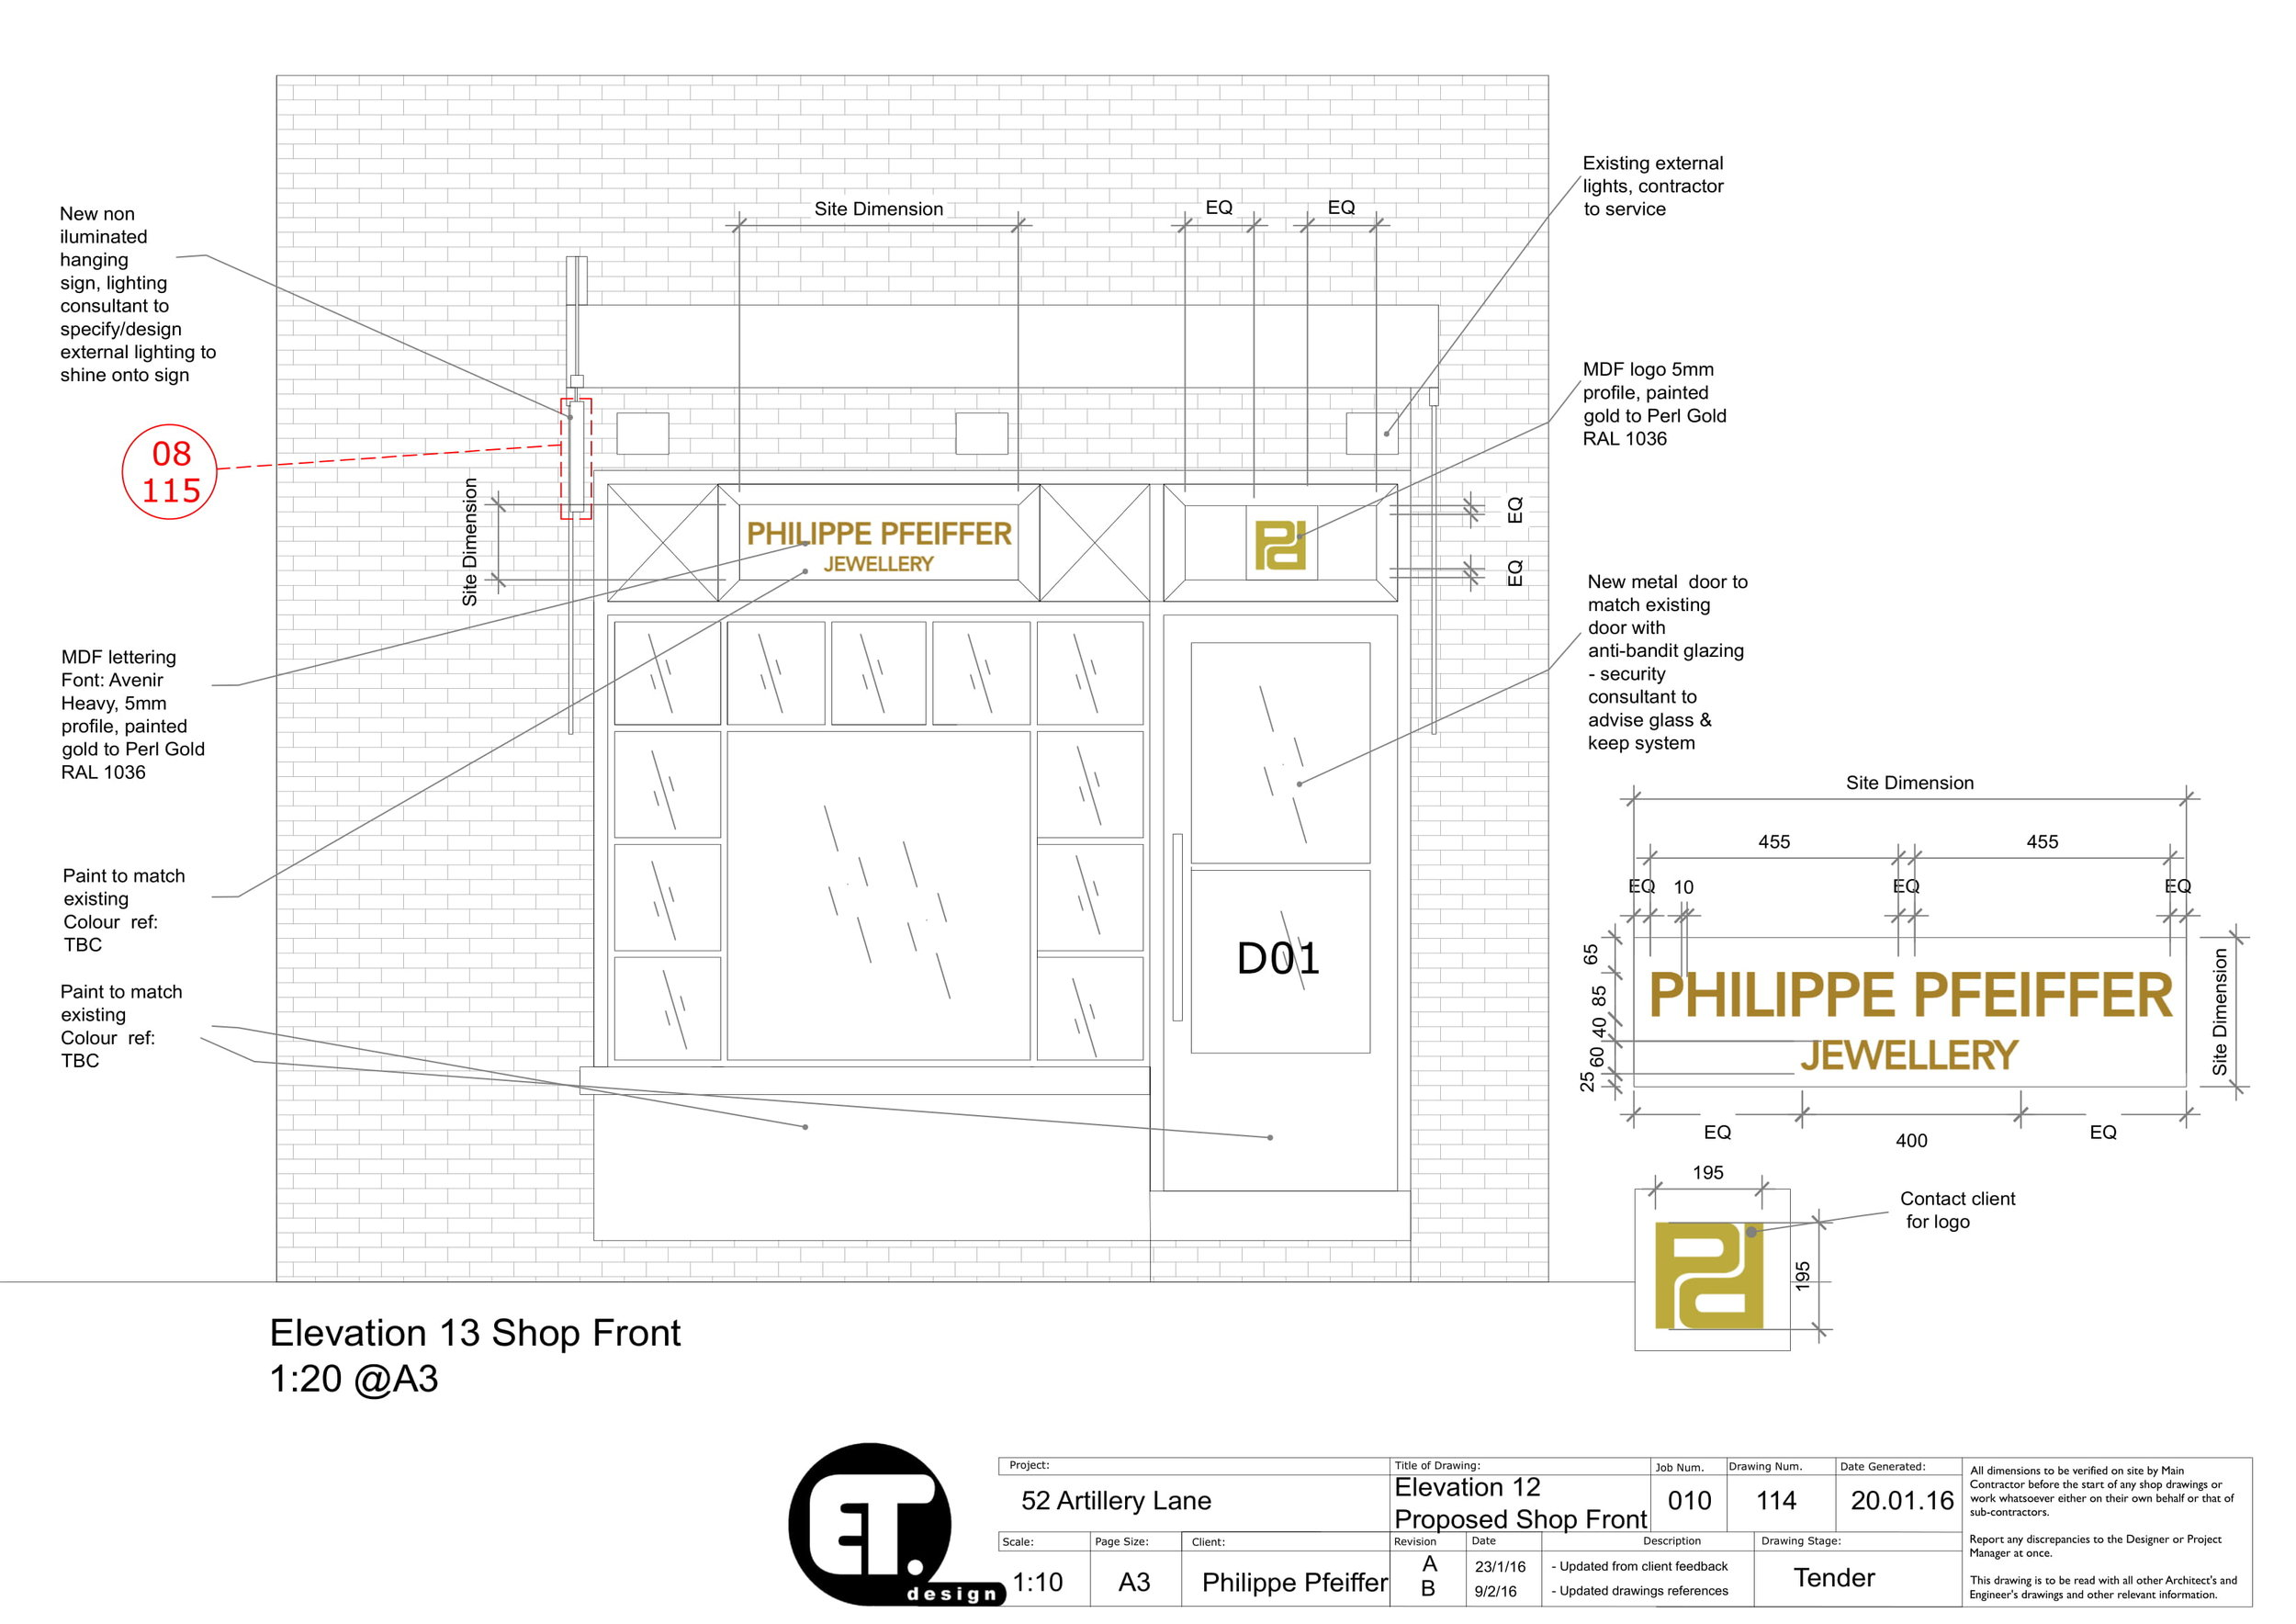 TECH DRAWINGS - A comprehensive technical drawing package produced using AutoCAD. Detailed information for building tender.